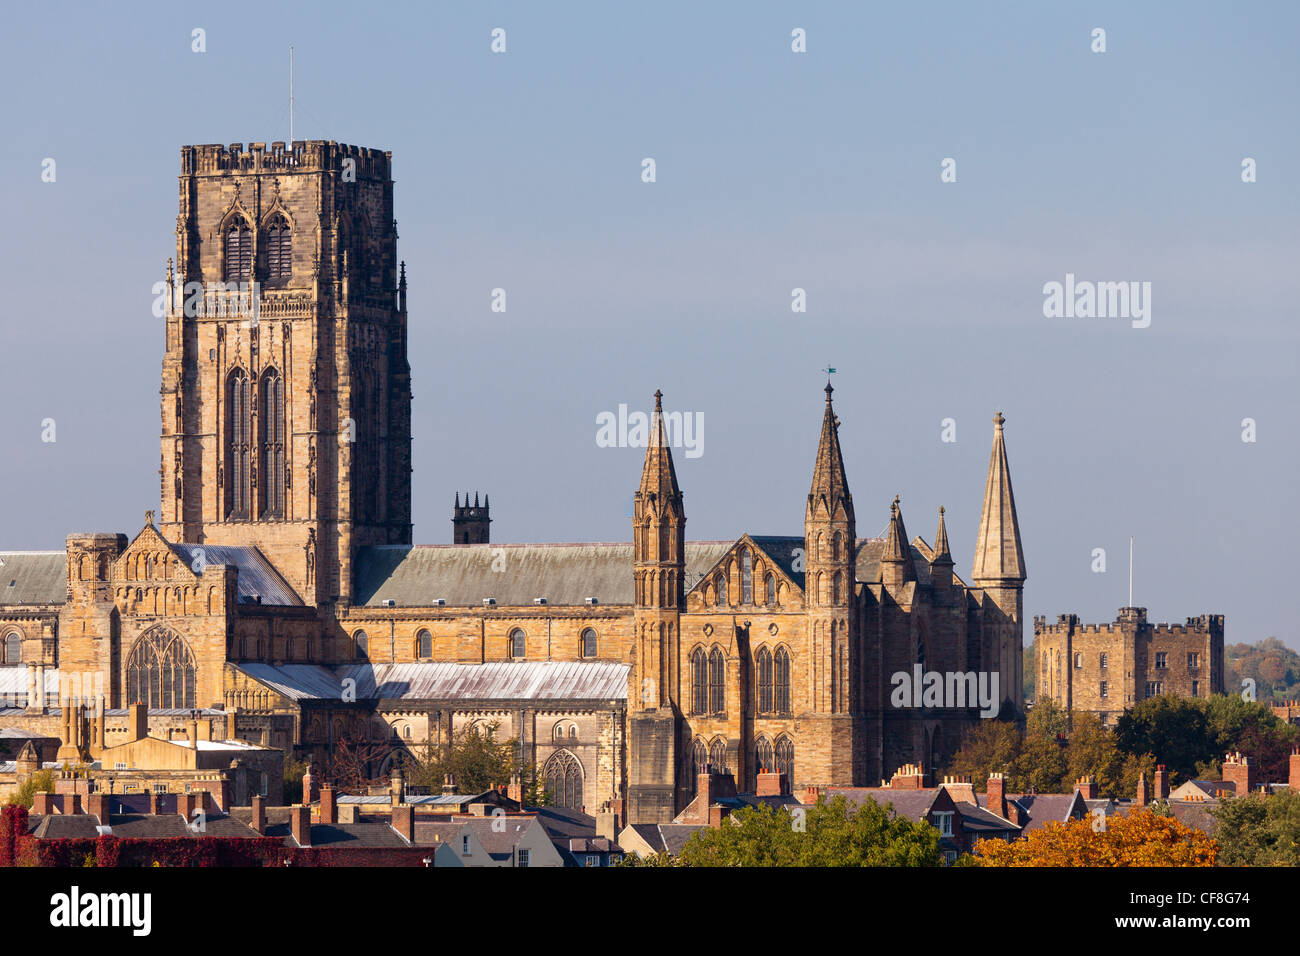 Durham Catherdial and Castle Durham England - Stock Image